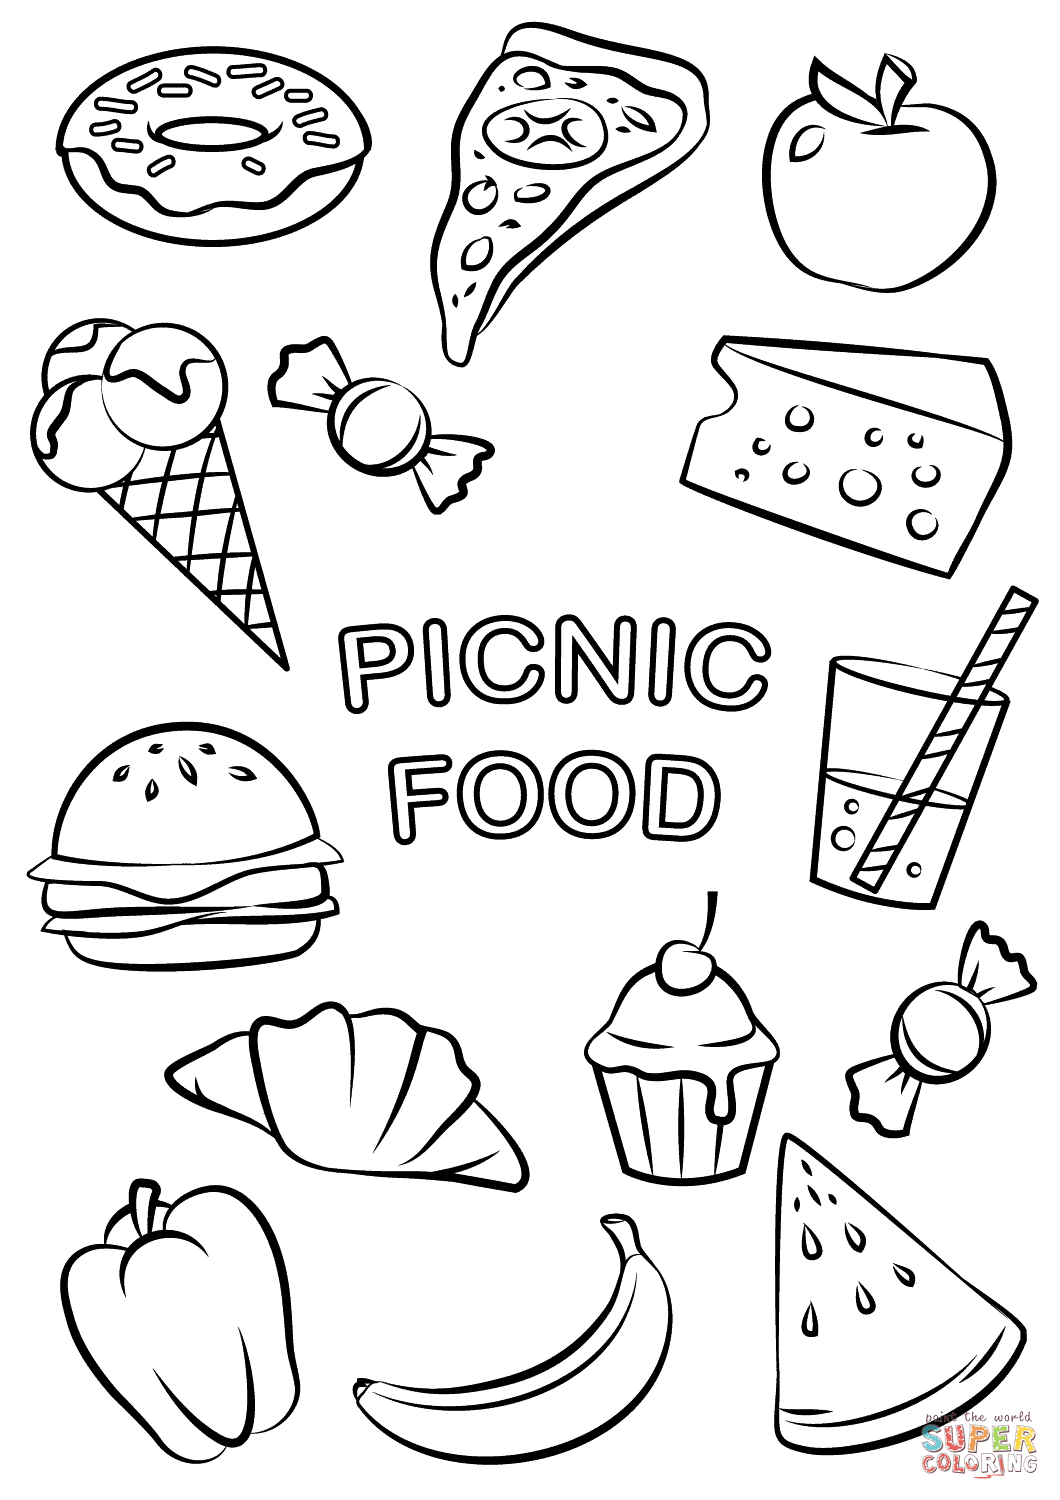 Food Coloring Pages At Coloring Book Online